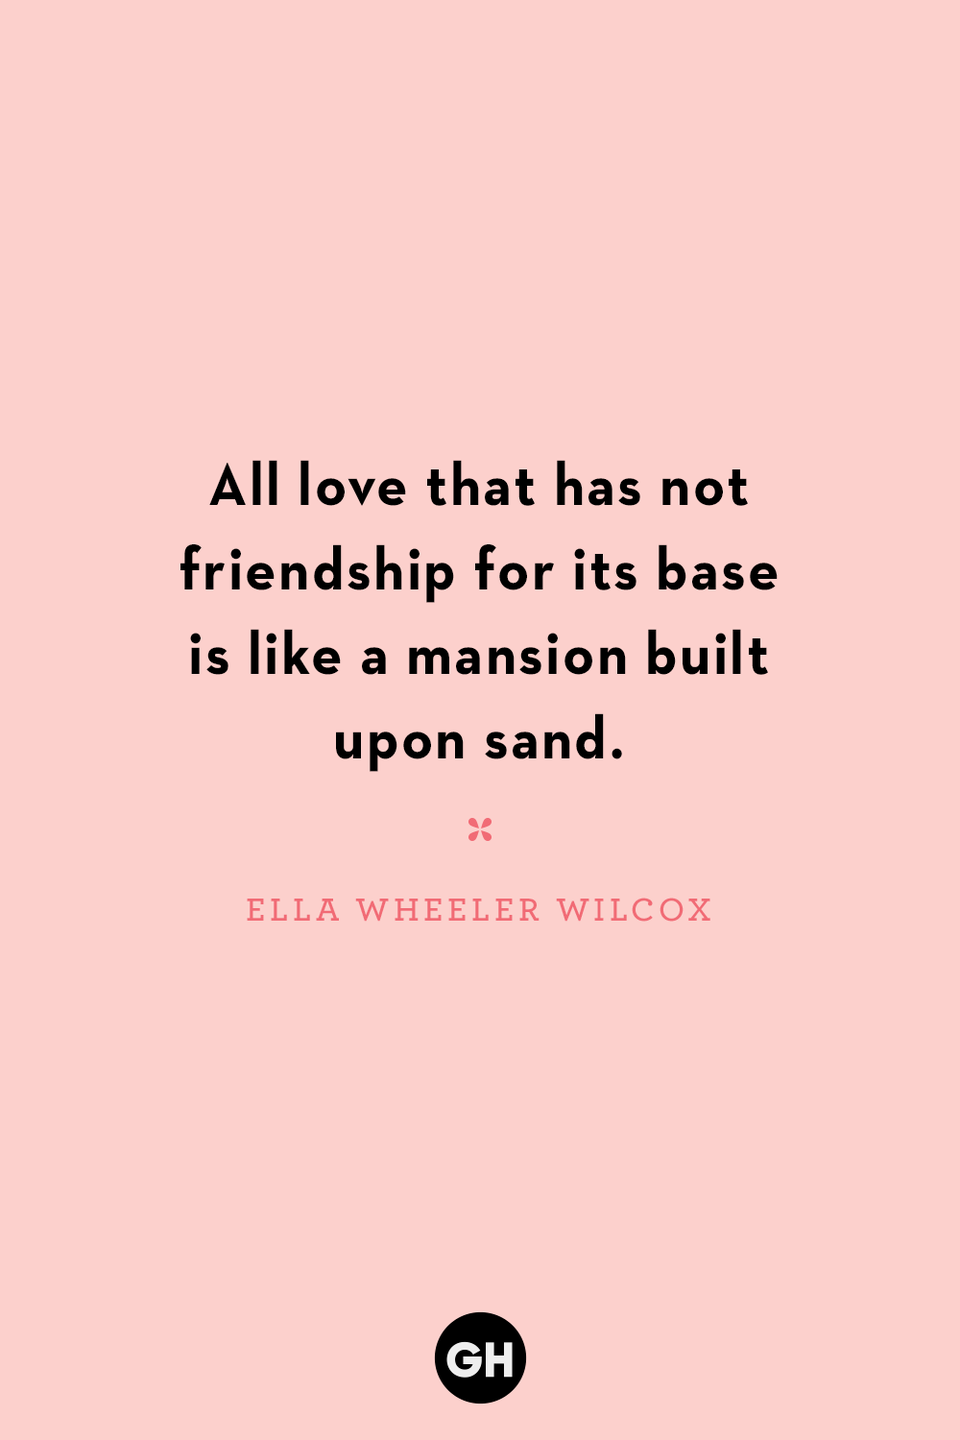 <p>All love that has not friendship for its base is like a mansion built upon sand.</p>